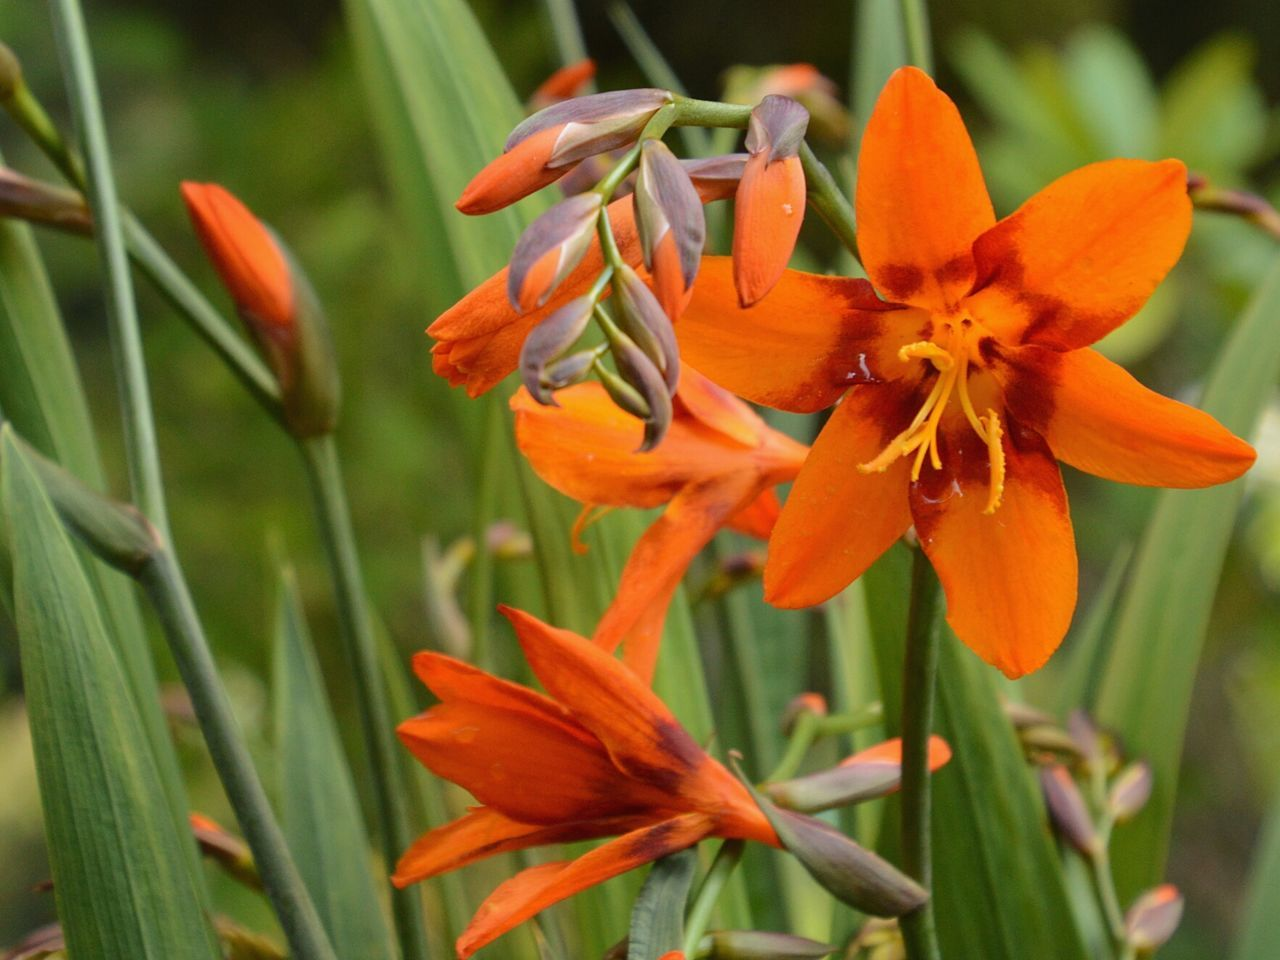 flower, petal, freshness, flower head, fragility, growth, beauty in nature, blooming, close-up, orange color, nature, plant, focus on foreground, pollen, stamen, in bloom, blossom, day, botany, no people, outdoors, selective focus, softness